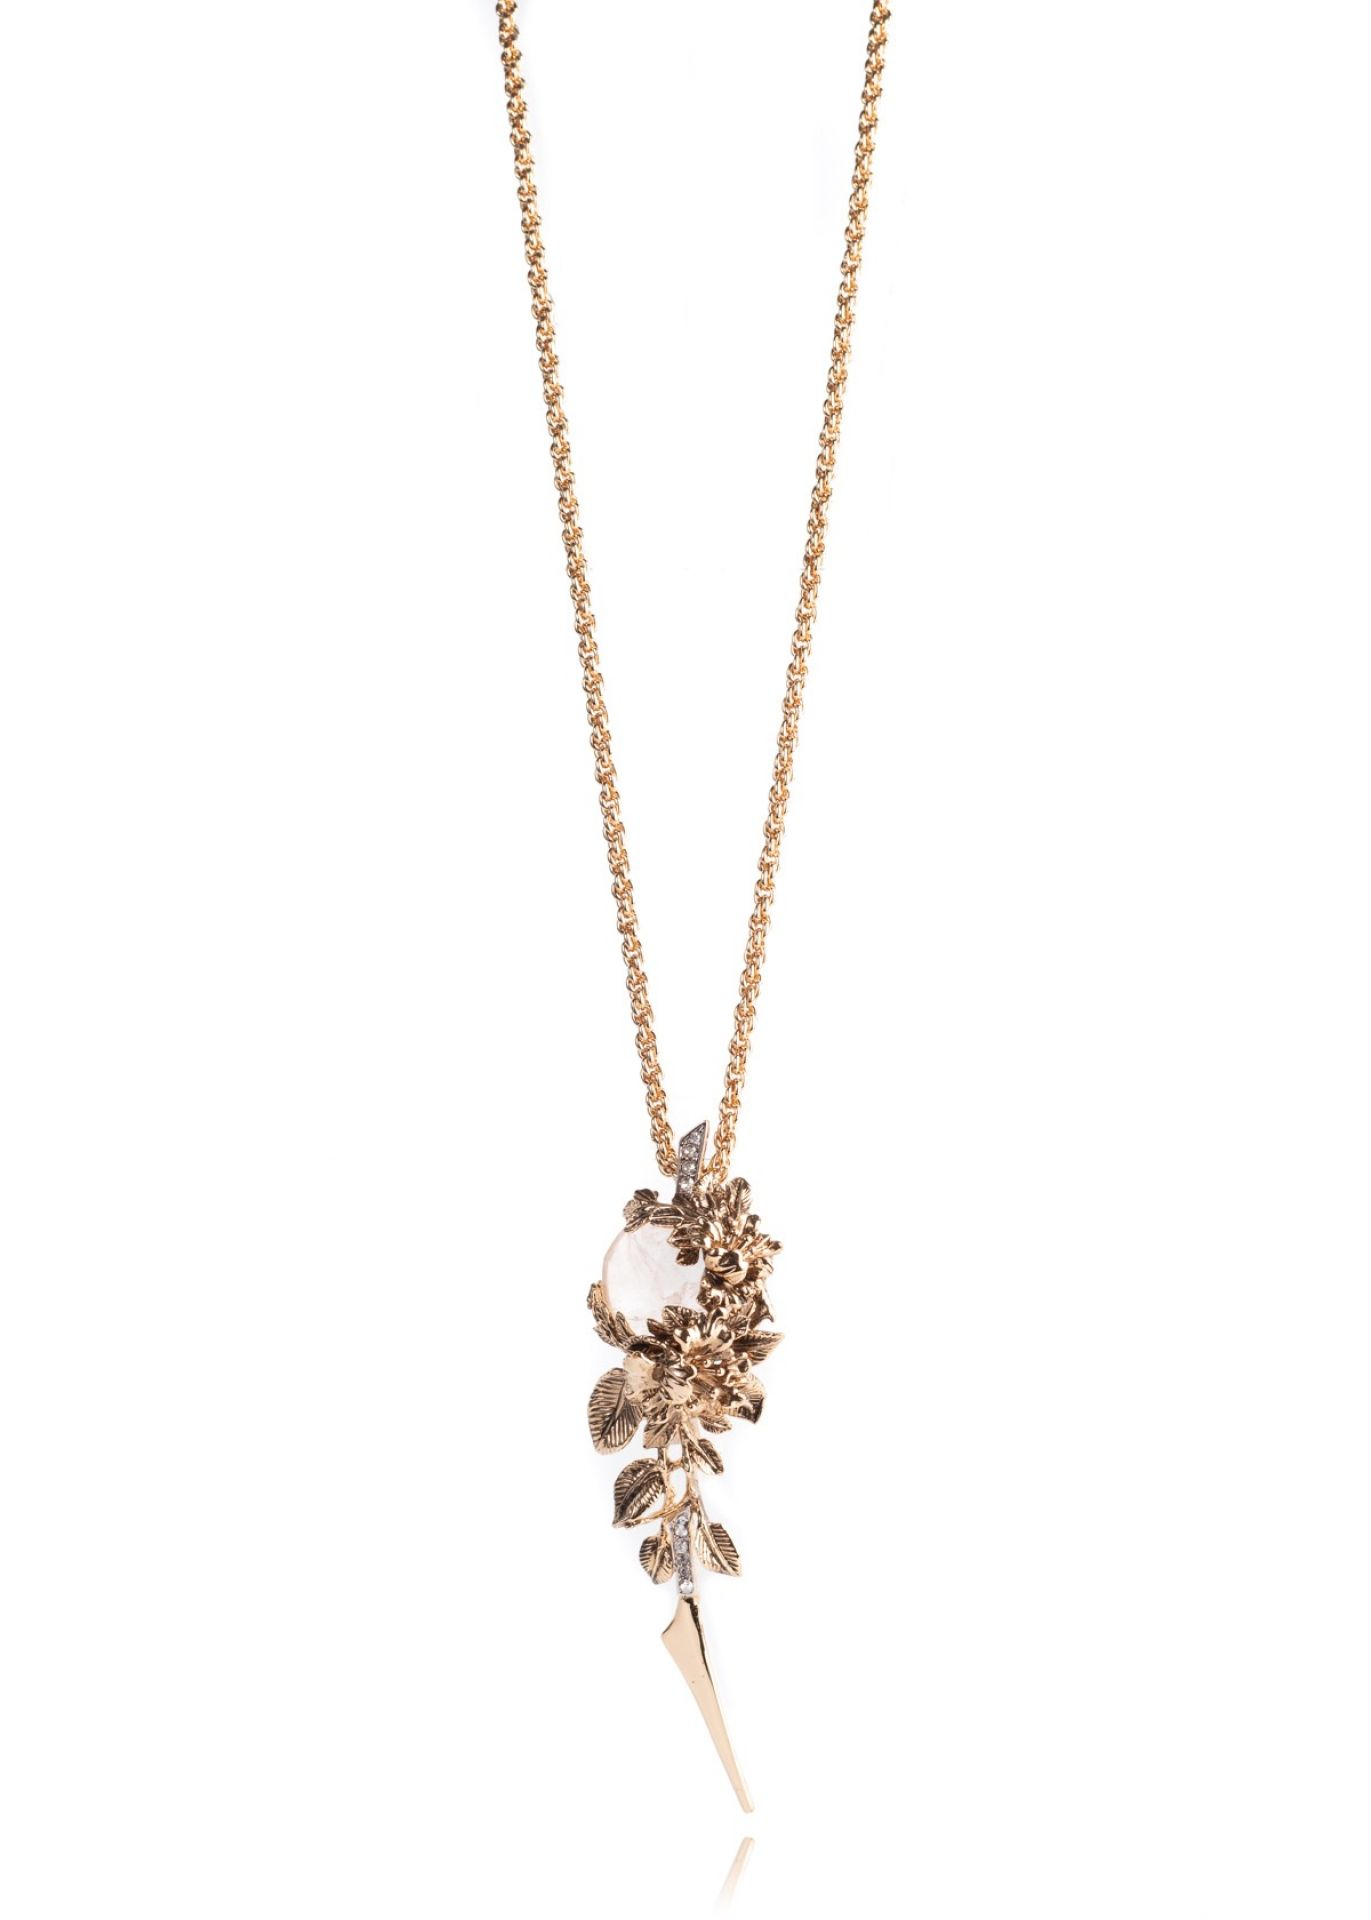 ROBERTO CAVALLI GOLD CABLE LINK WHITE OPAL SWAROVSKI FLORAL CHAIN